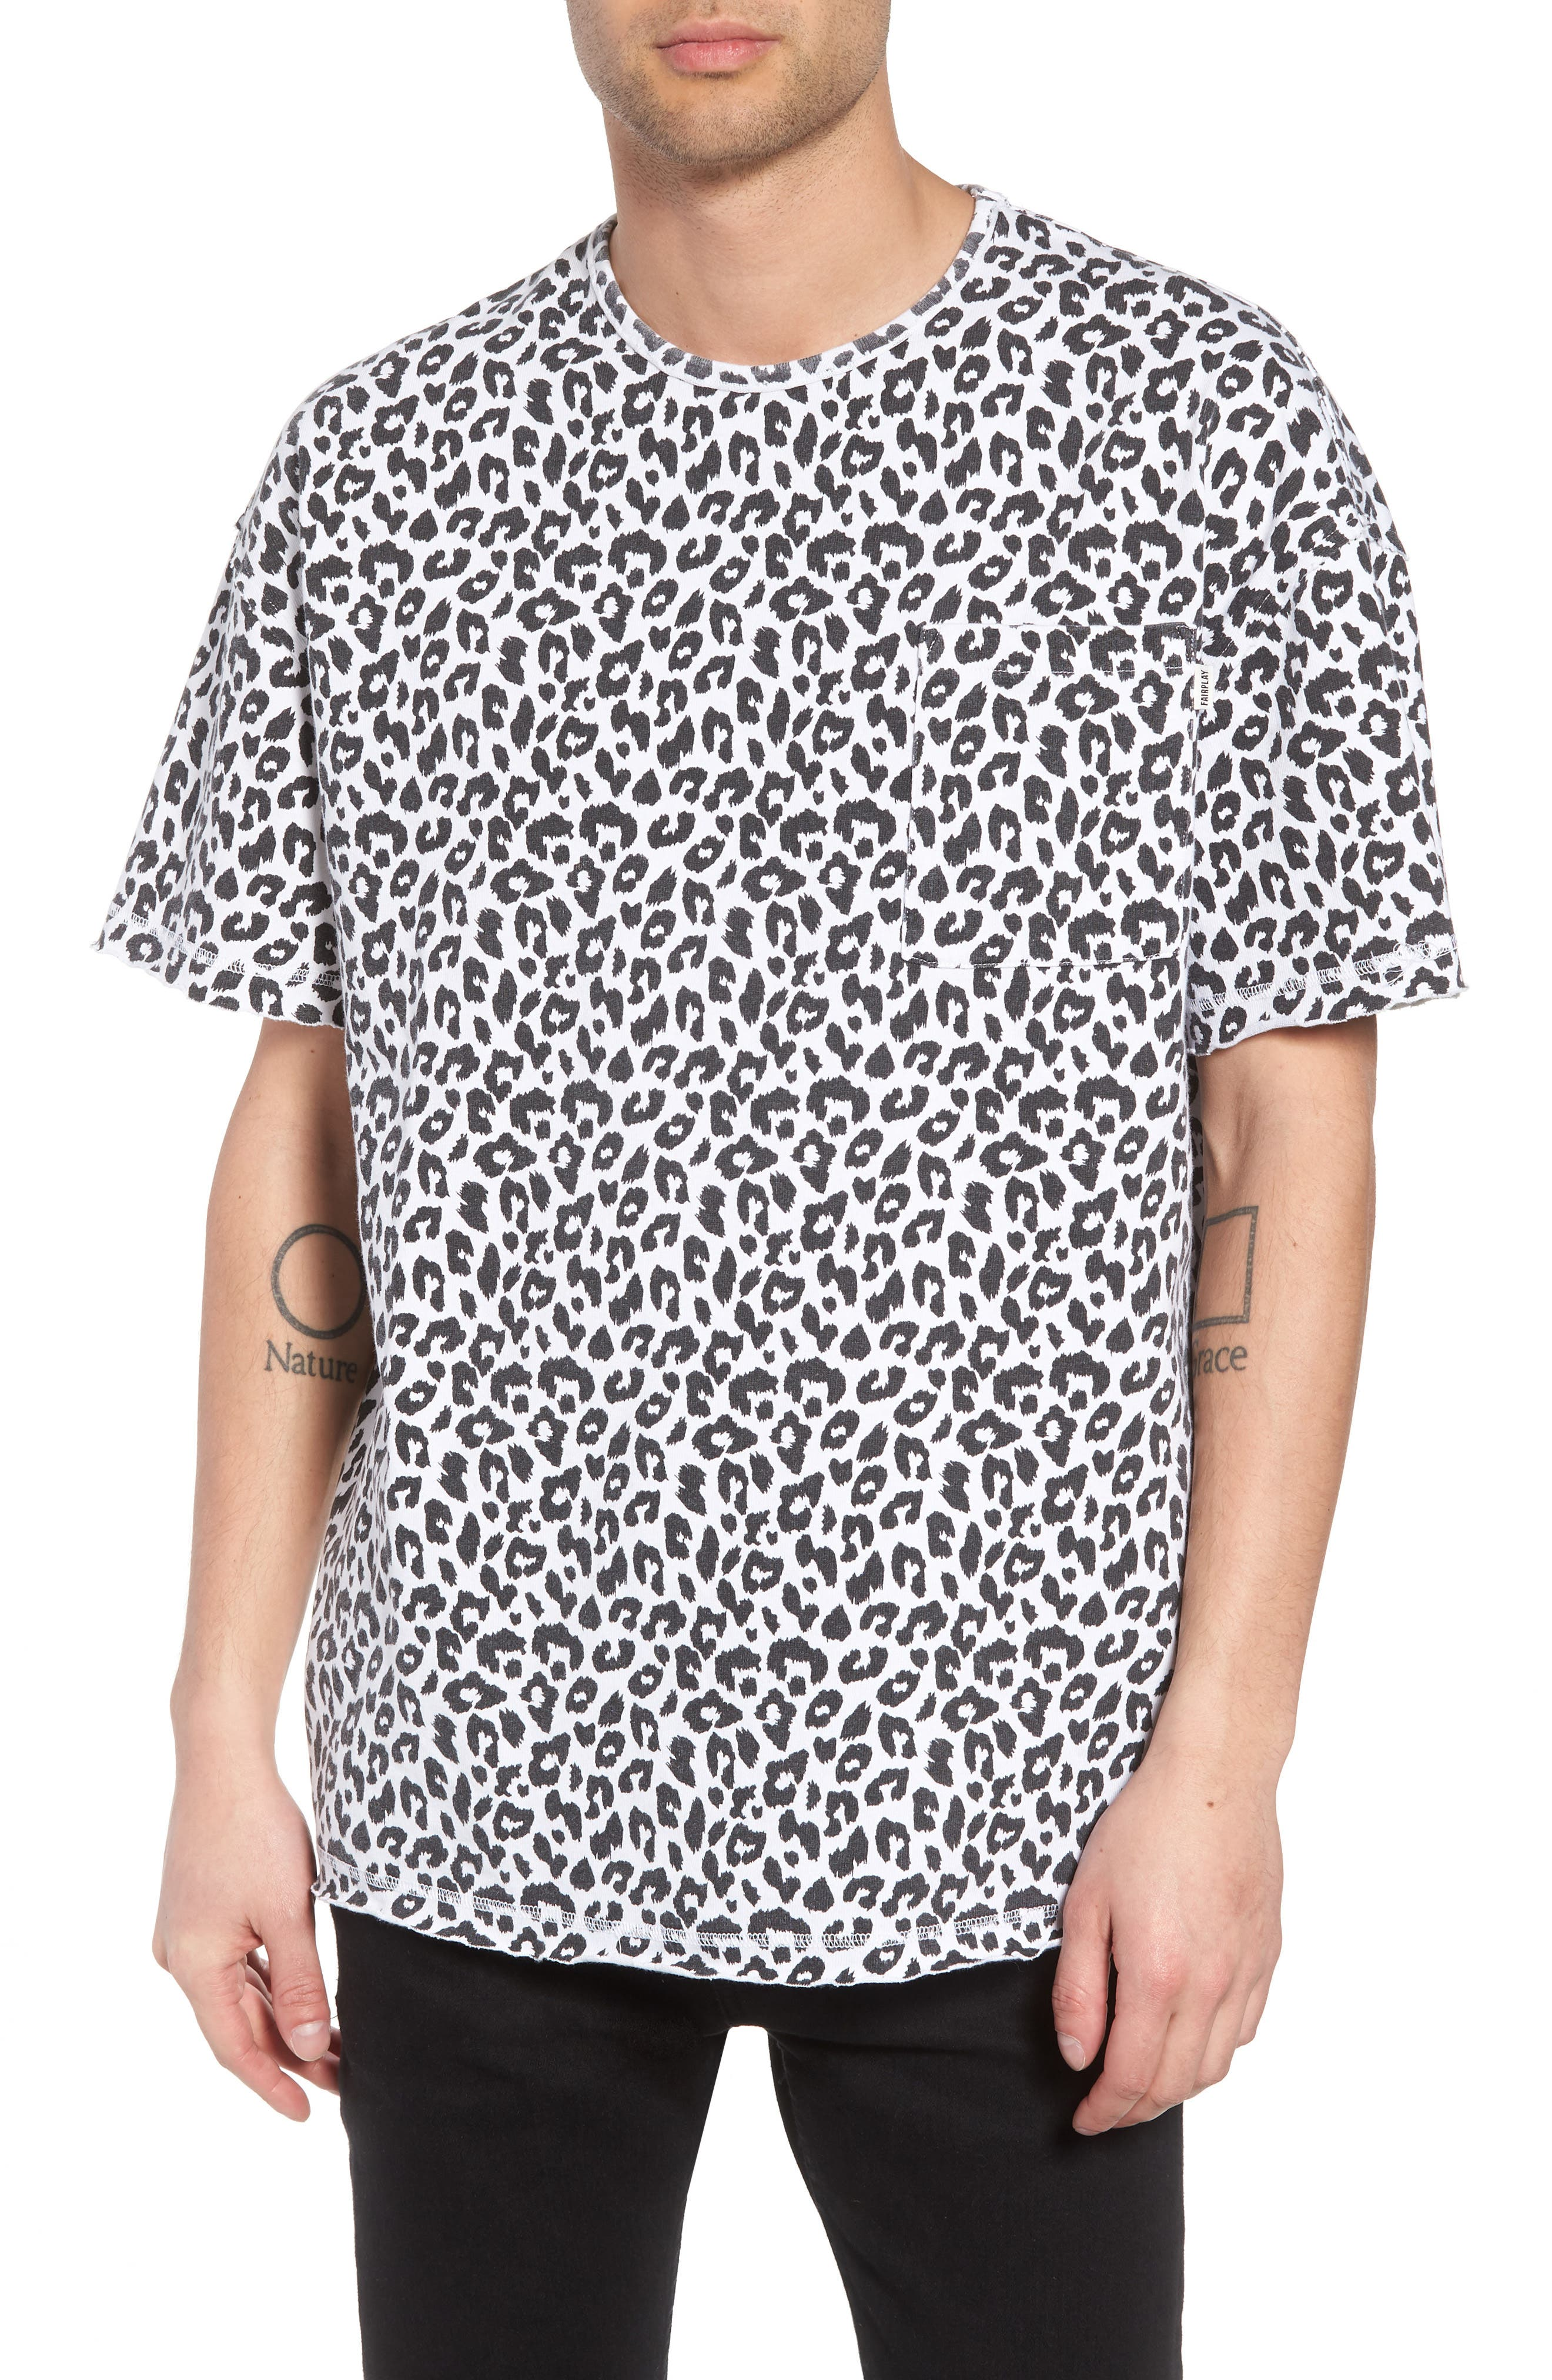 Mich Print T-Shirt,                         Main,                         color, White